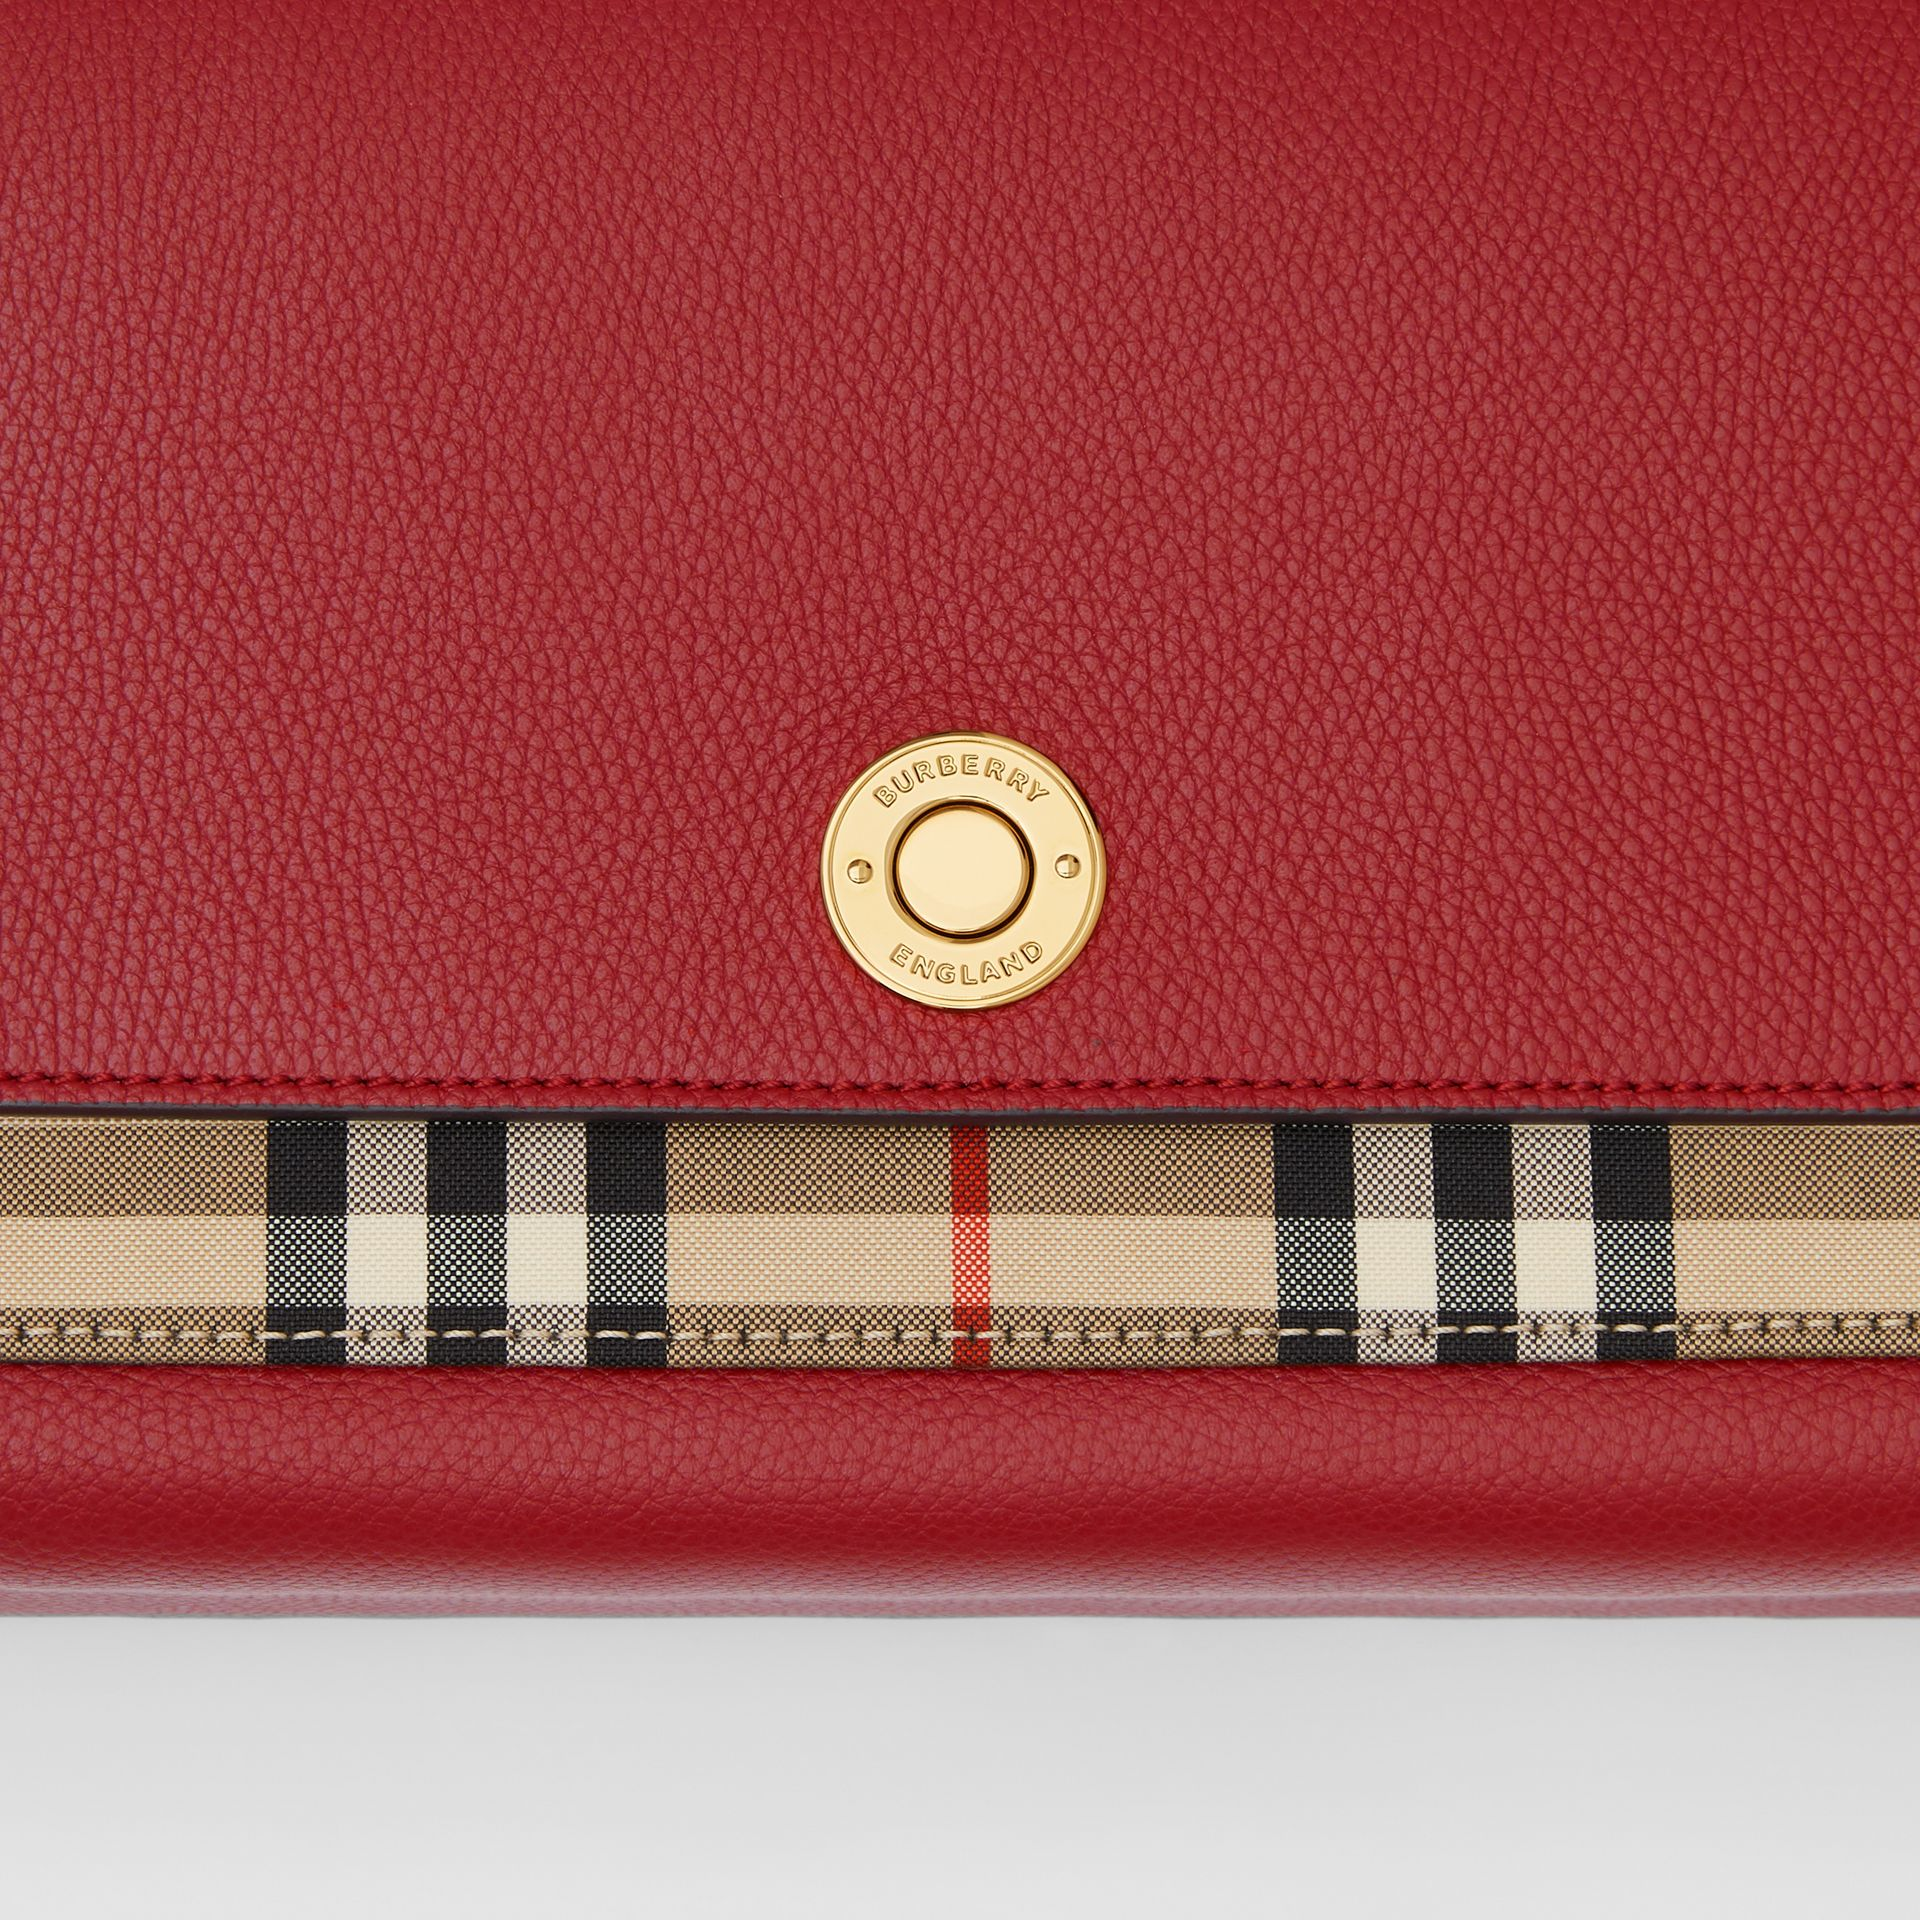 Leather and Vintage Check Note Crossbody Bag in Dark Carmine - Women | Burberry United States - gallery image 1